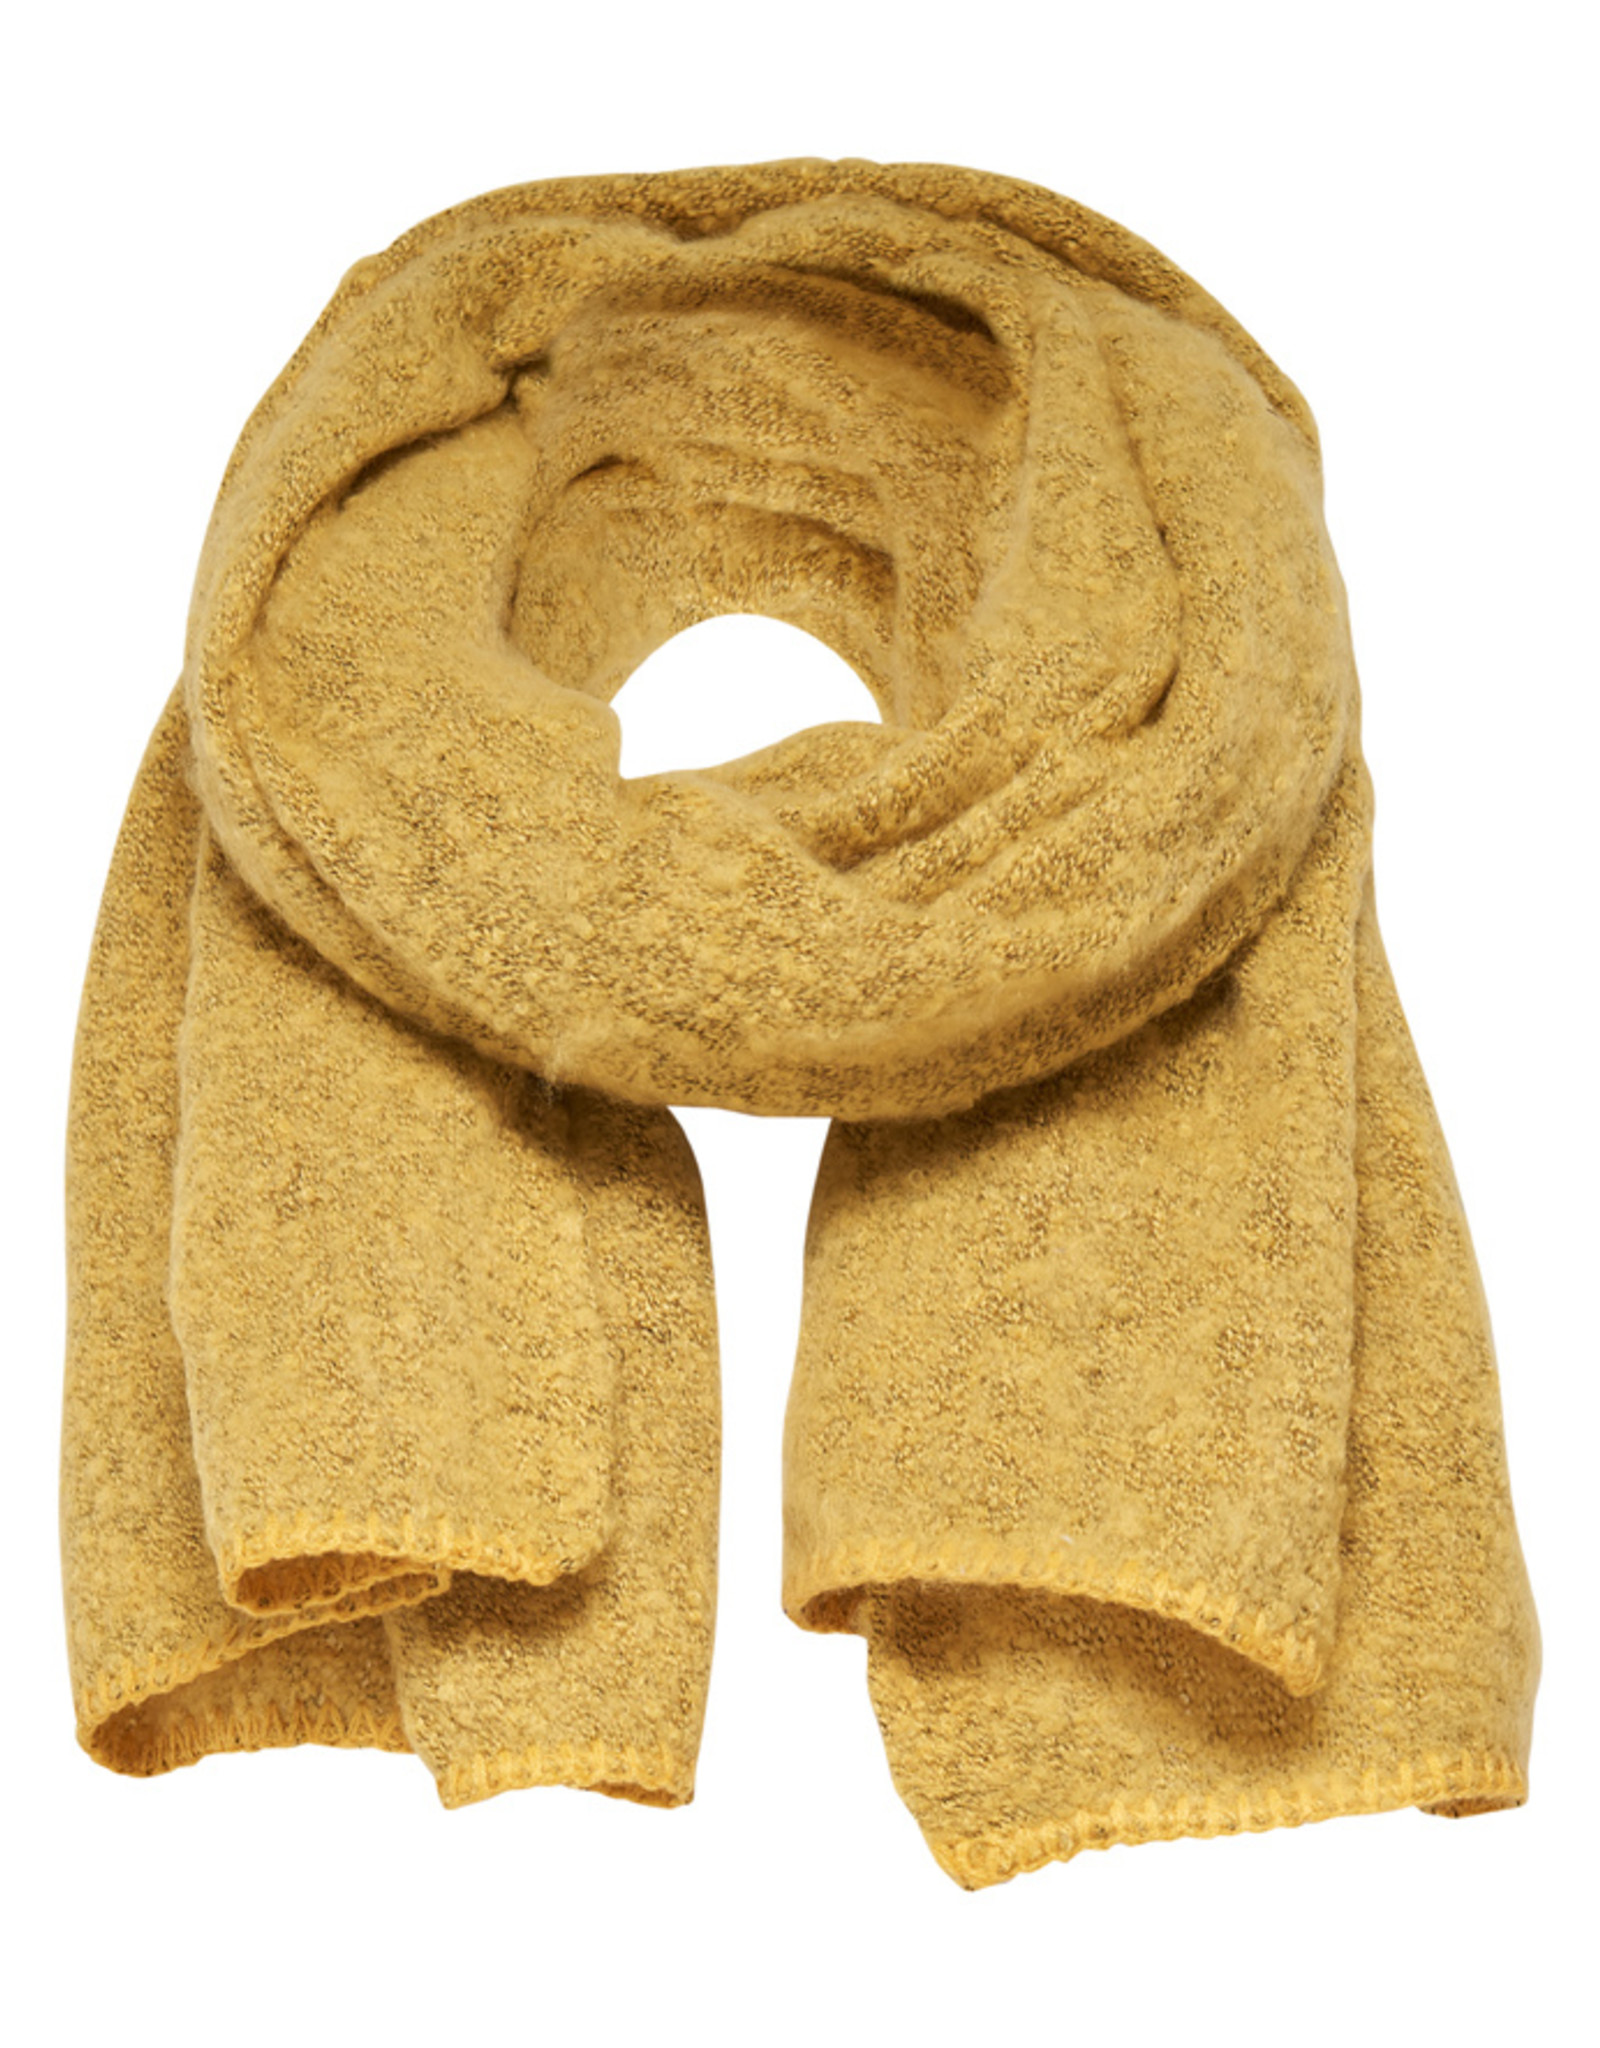 O. W19 LIMA SCARF YELLOW